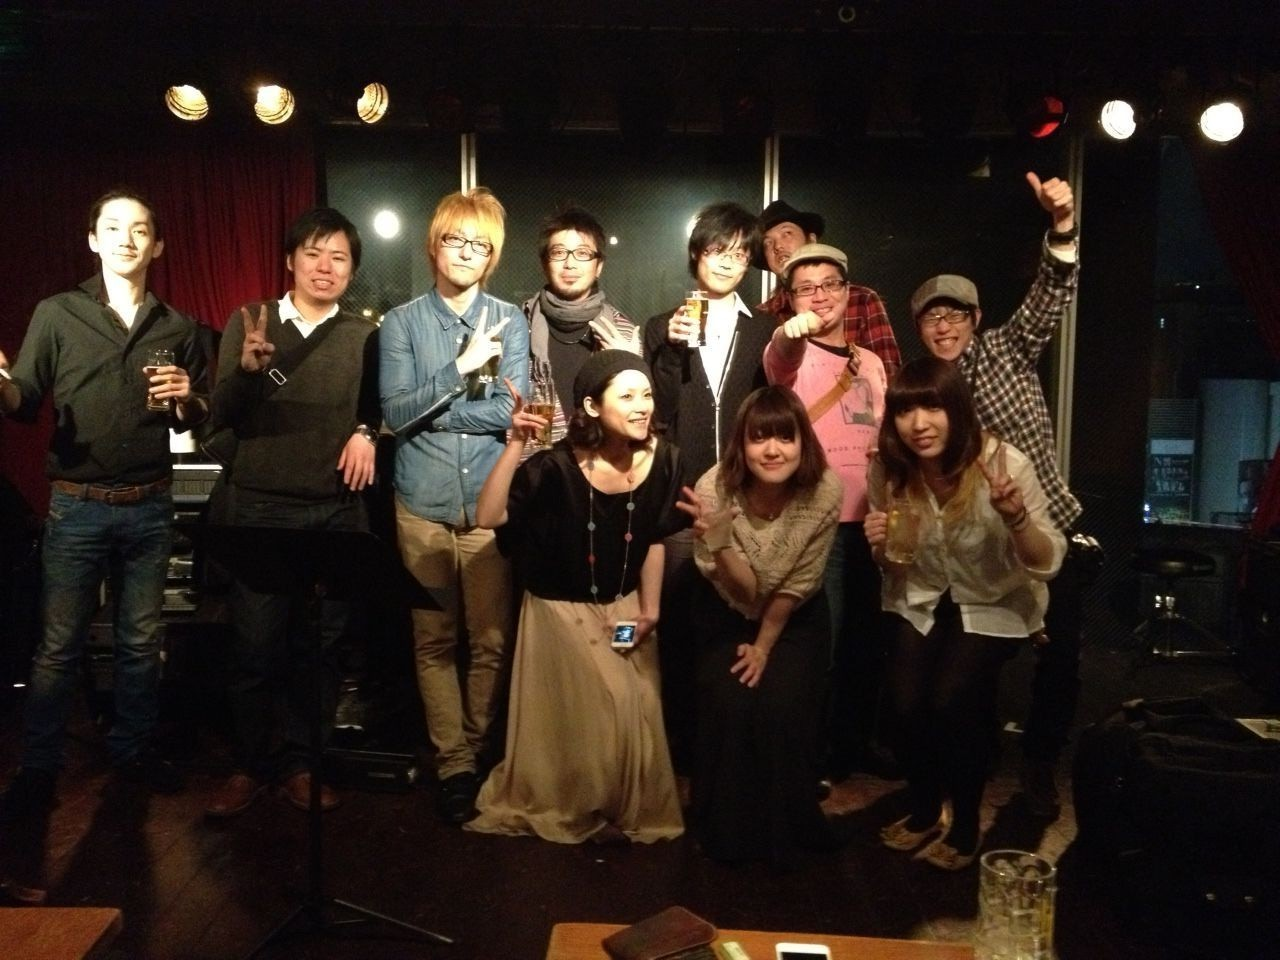 2012-04-06 - The Jubilax Live at 7th Floore1